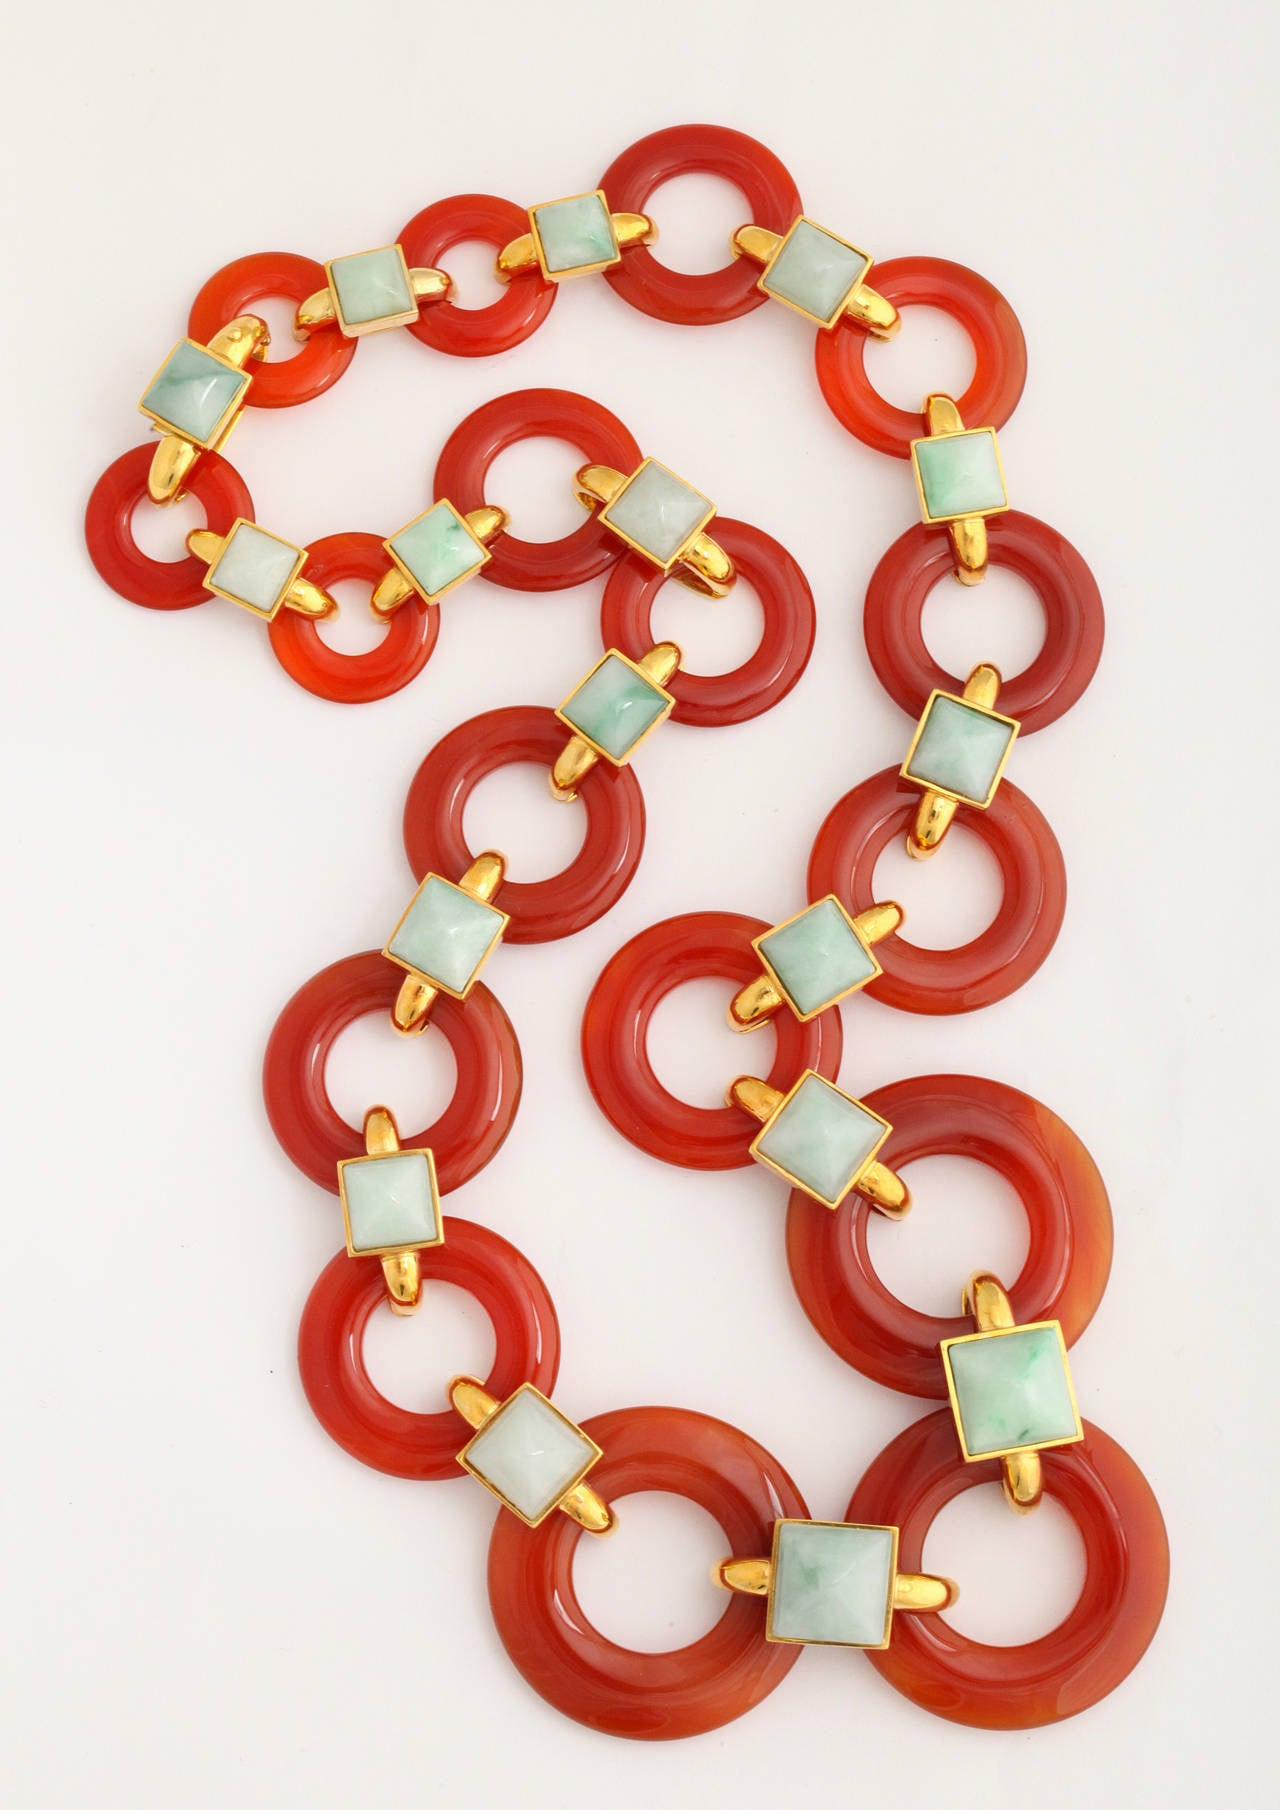 1970s Aldo Cipullo Carved Carnelian Jade Gold Link Necklace For Sale 2